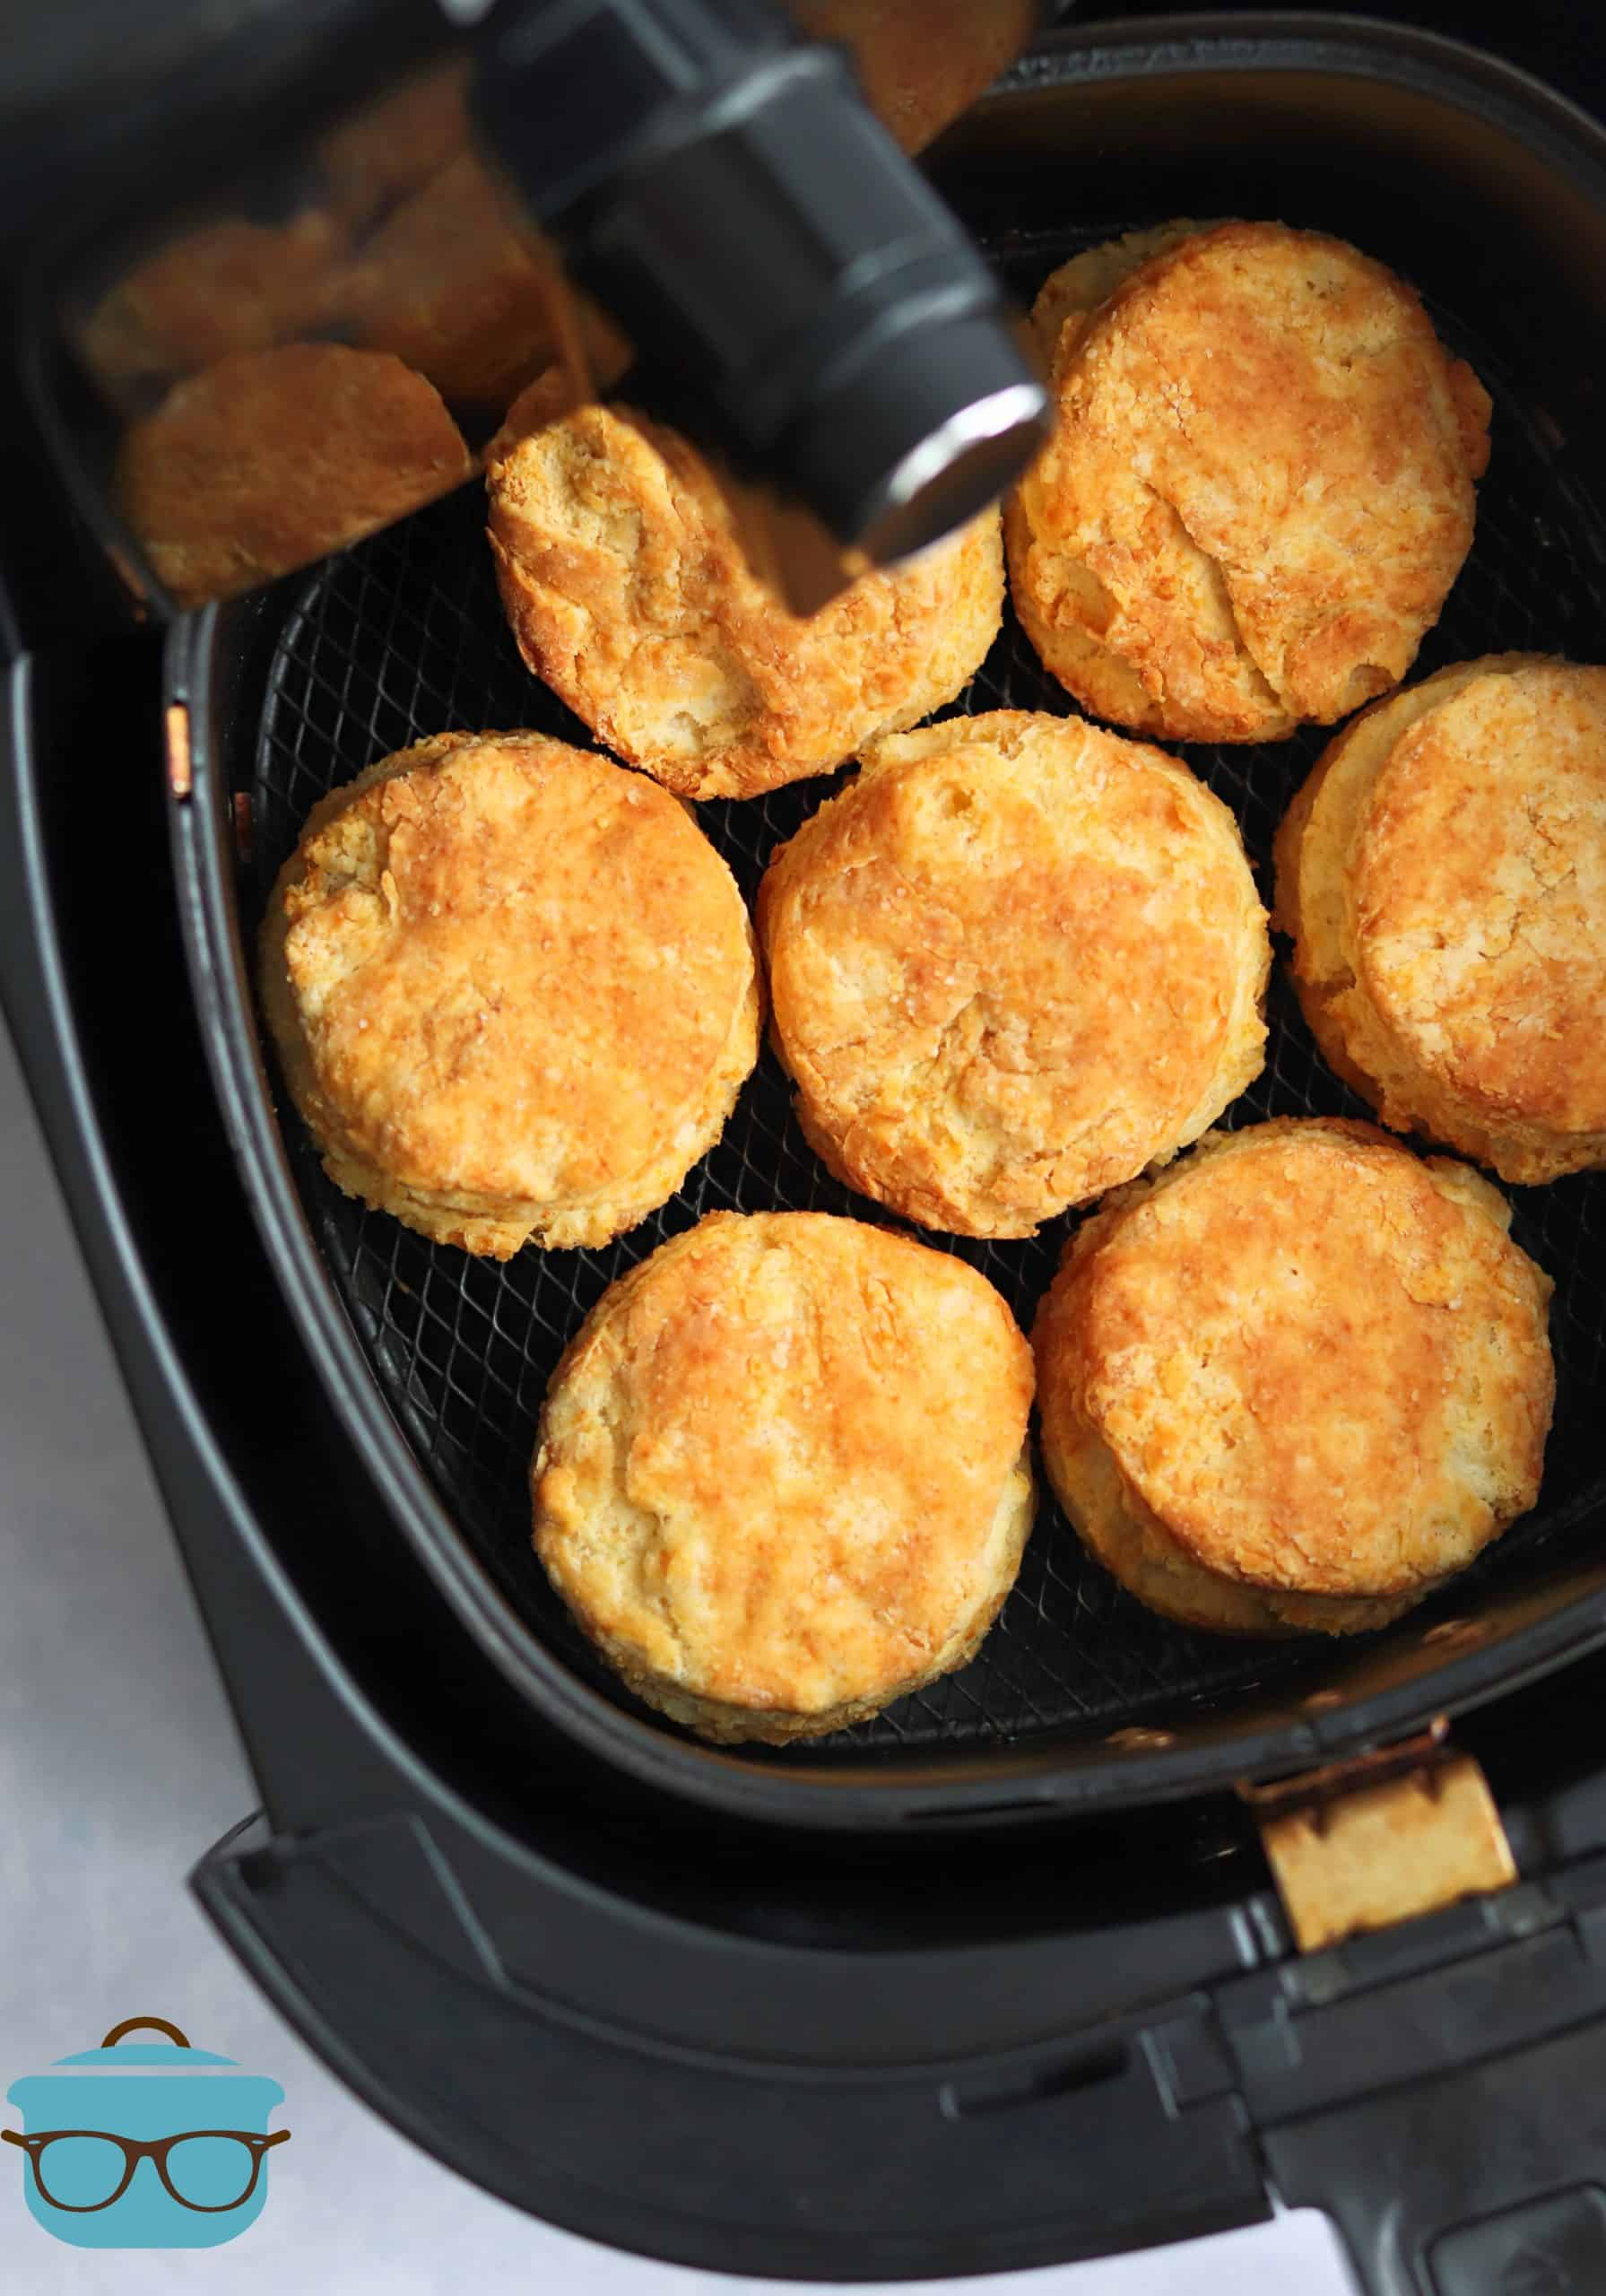 Finished Buttermilk Biscuits in air fryer basket.